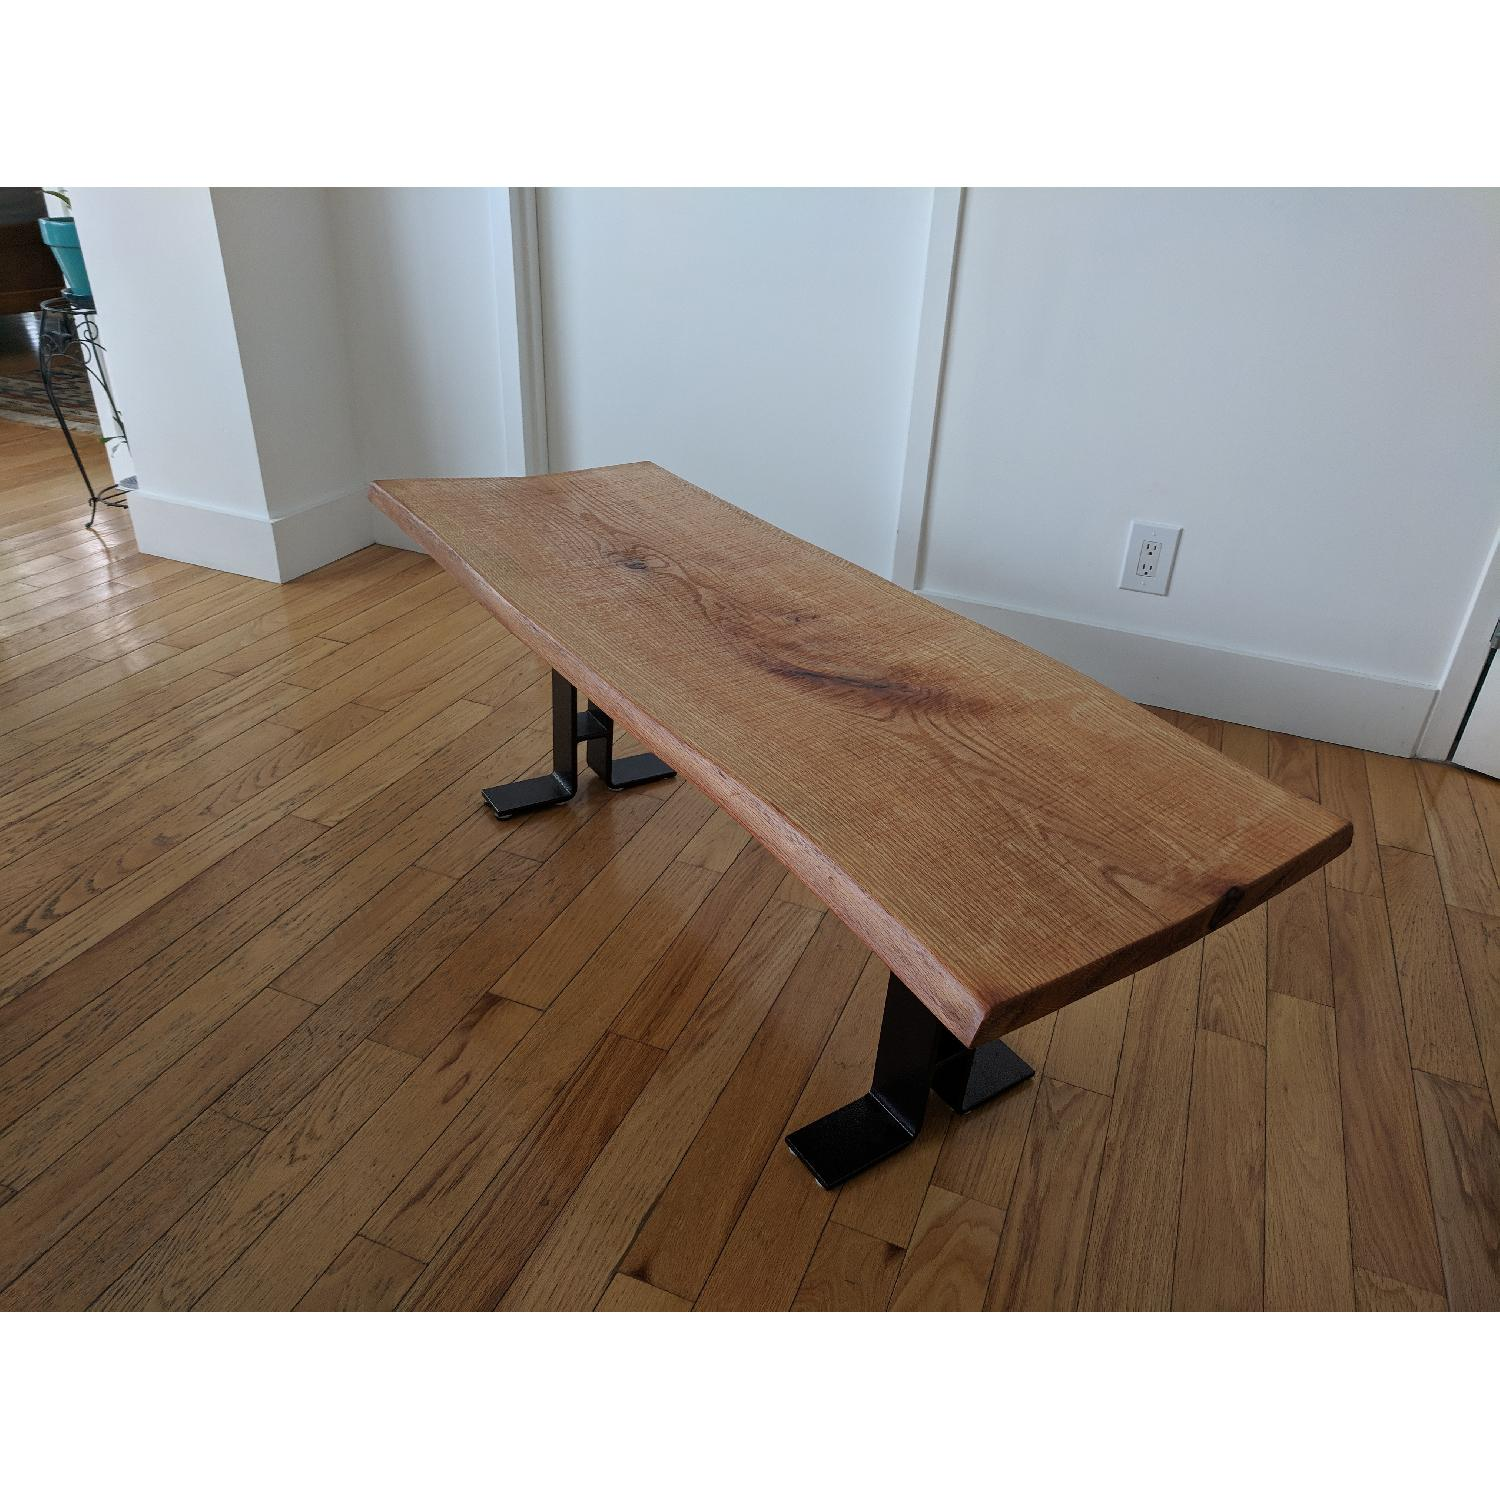 Handmade Oak Dining Table w/ 2 Matching Benches - image-8